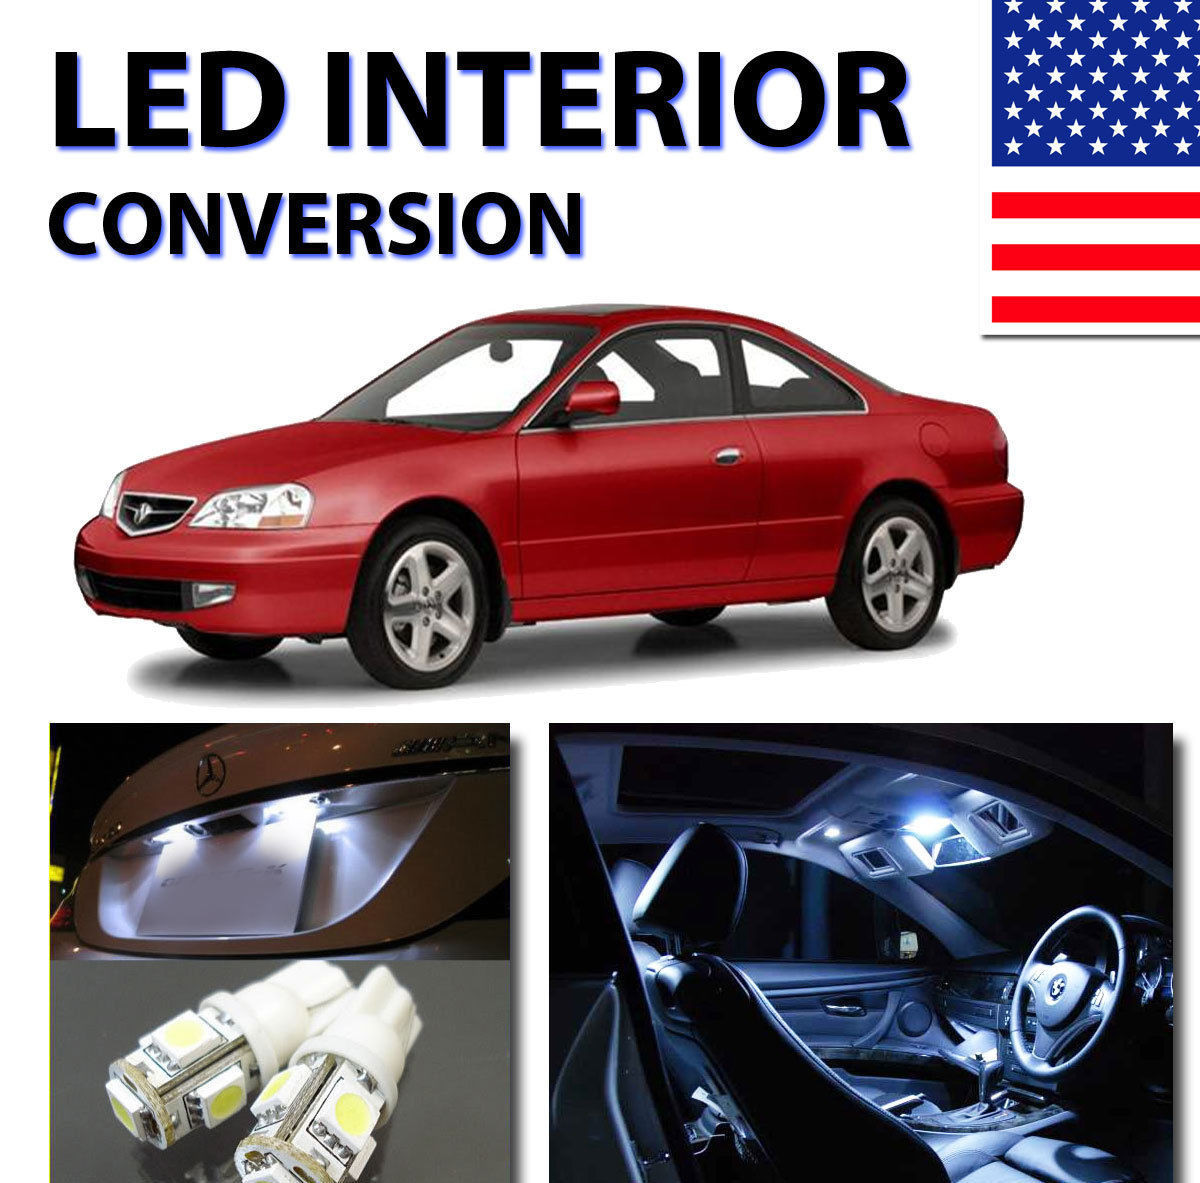 led interior kit for acura cl 2001 2003 price 34 99 image 1 [ 1200 x 1183 Pixel ]